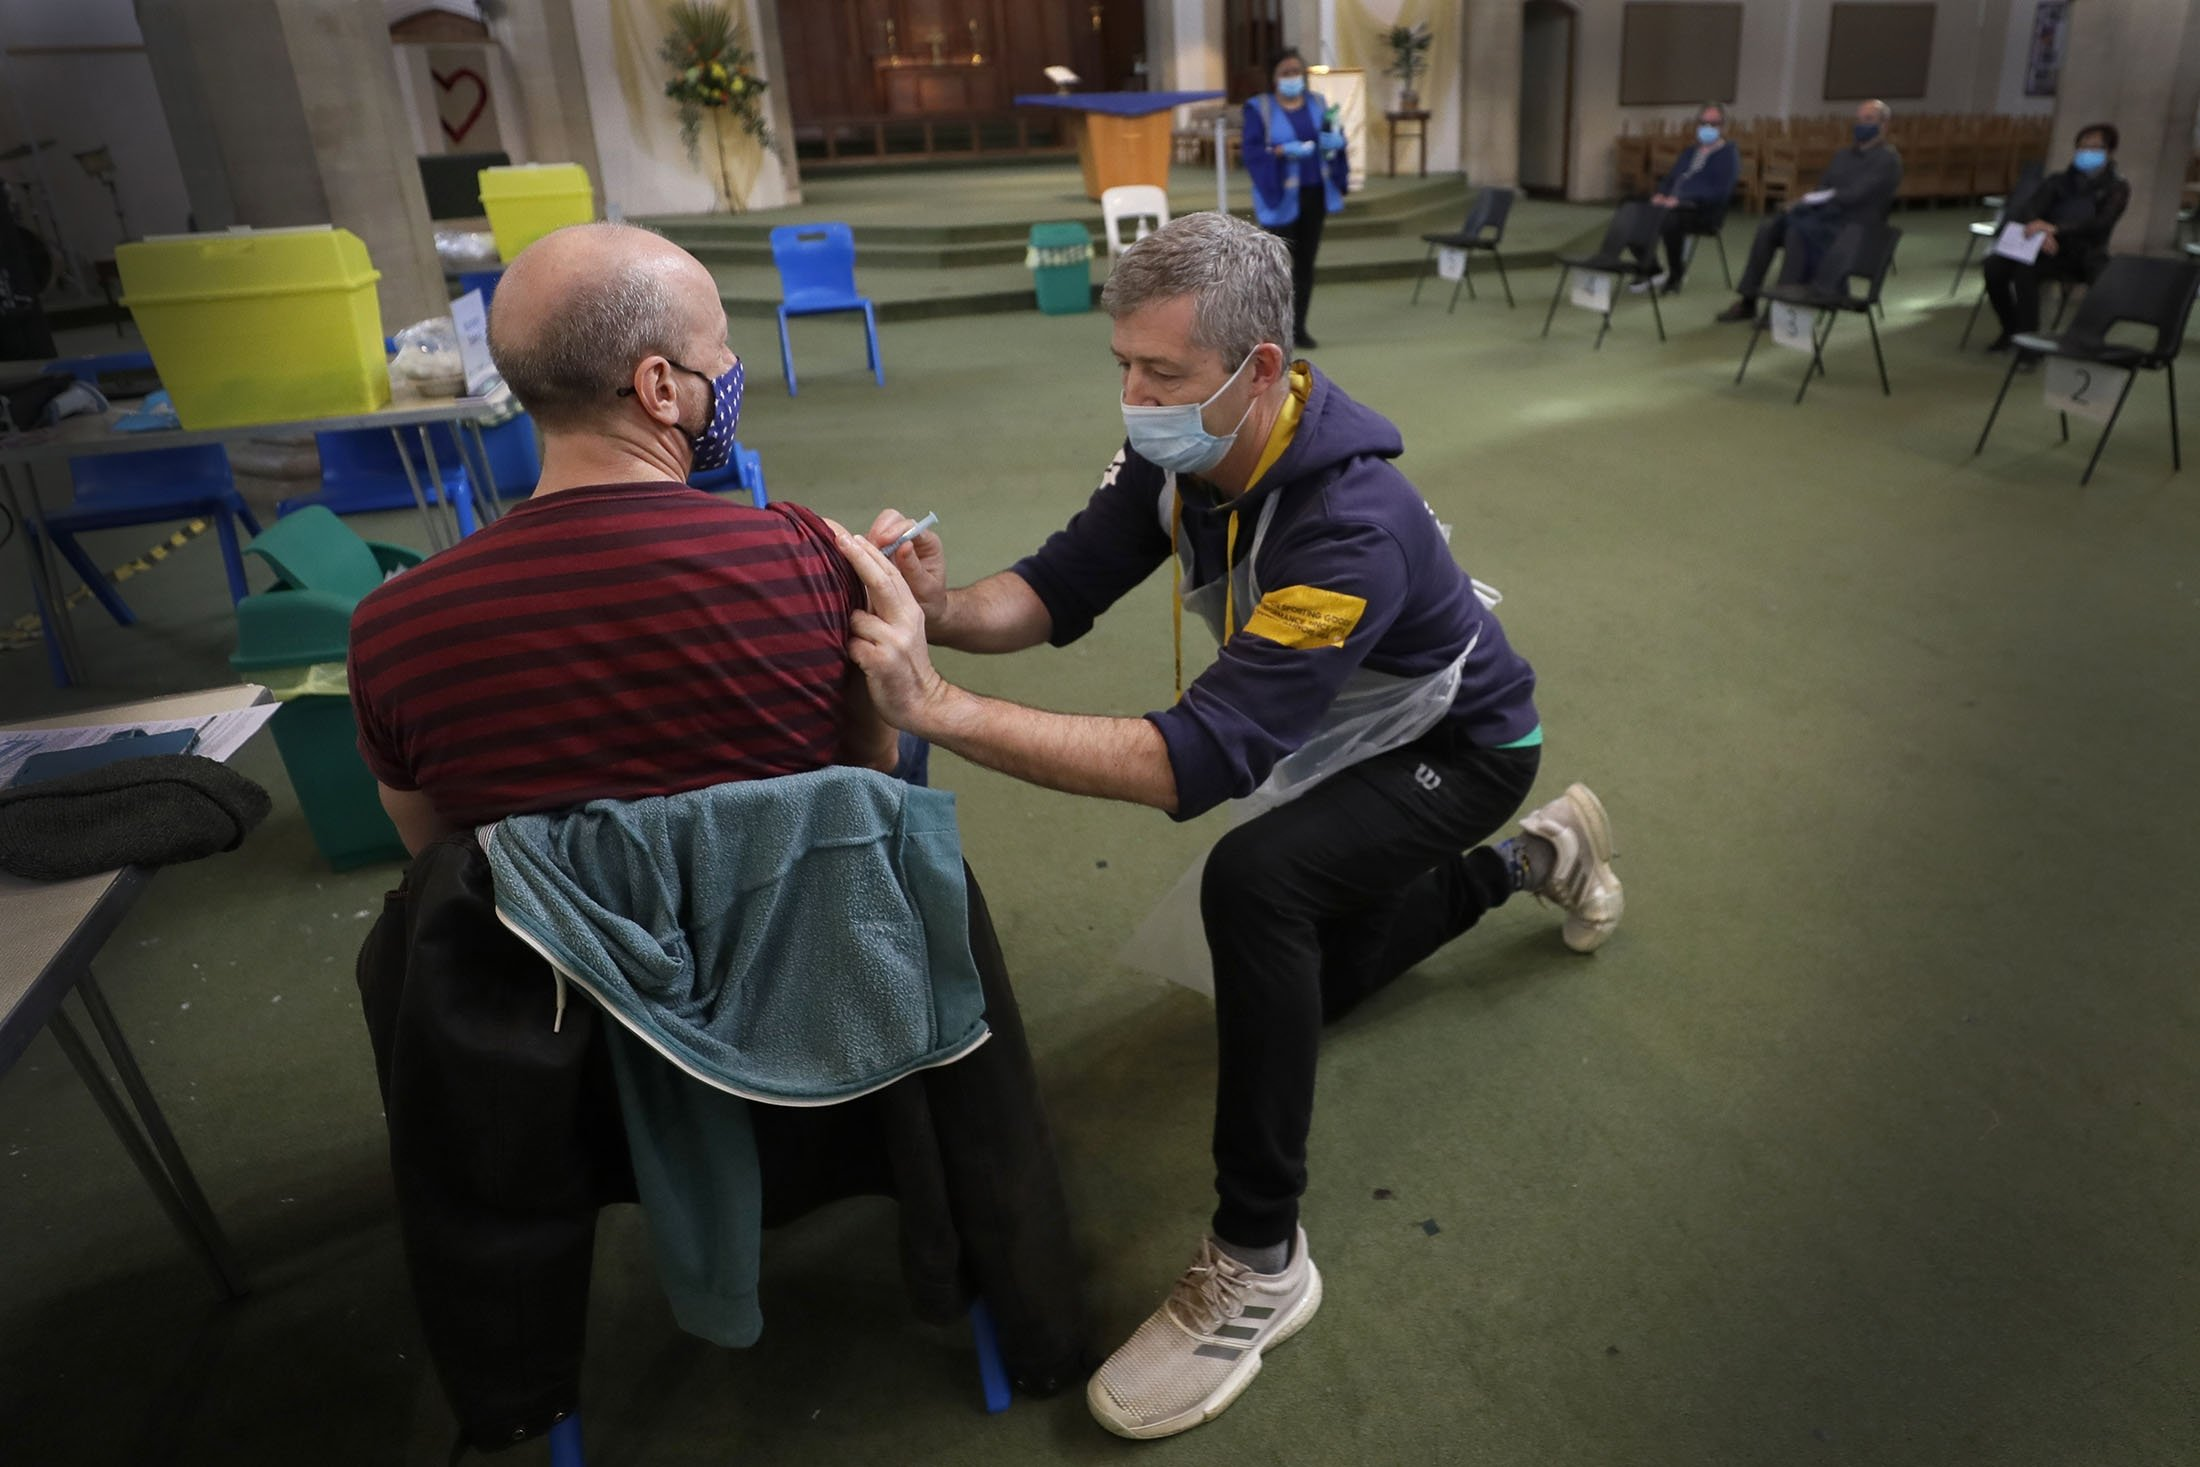 A St Johns Ambulance vaccinator gives the AstraZeneca vaccine at St John's Church, in Ealing, London, Tuesday, March 16, 2021. (AP Photo)